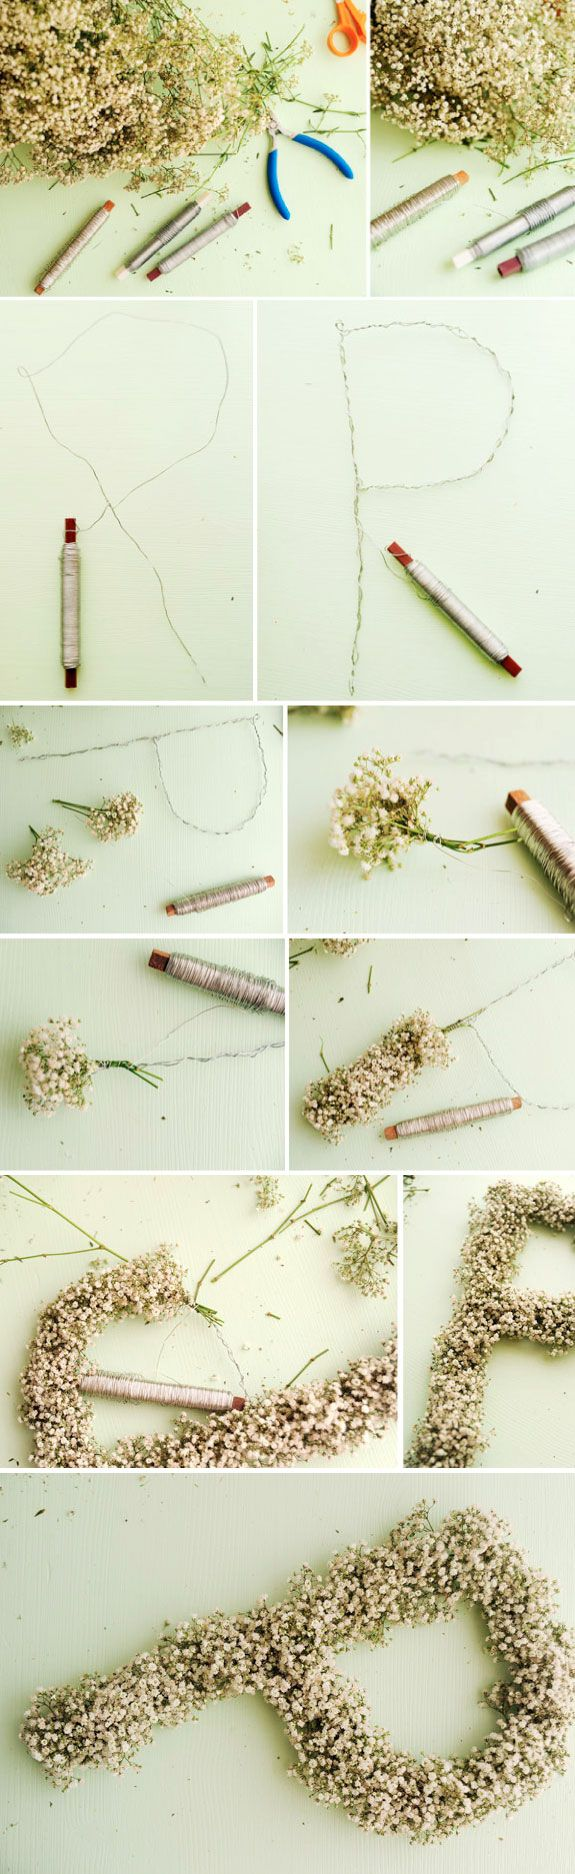 DIY Flower Lettering Decorations